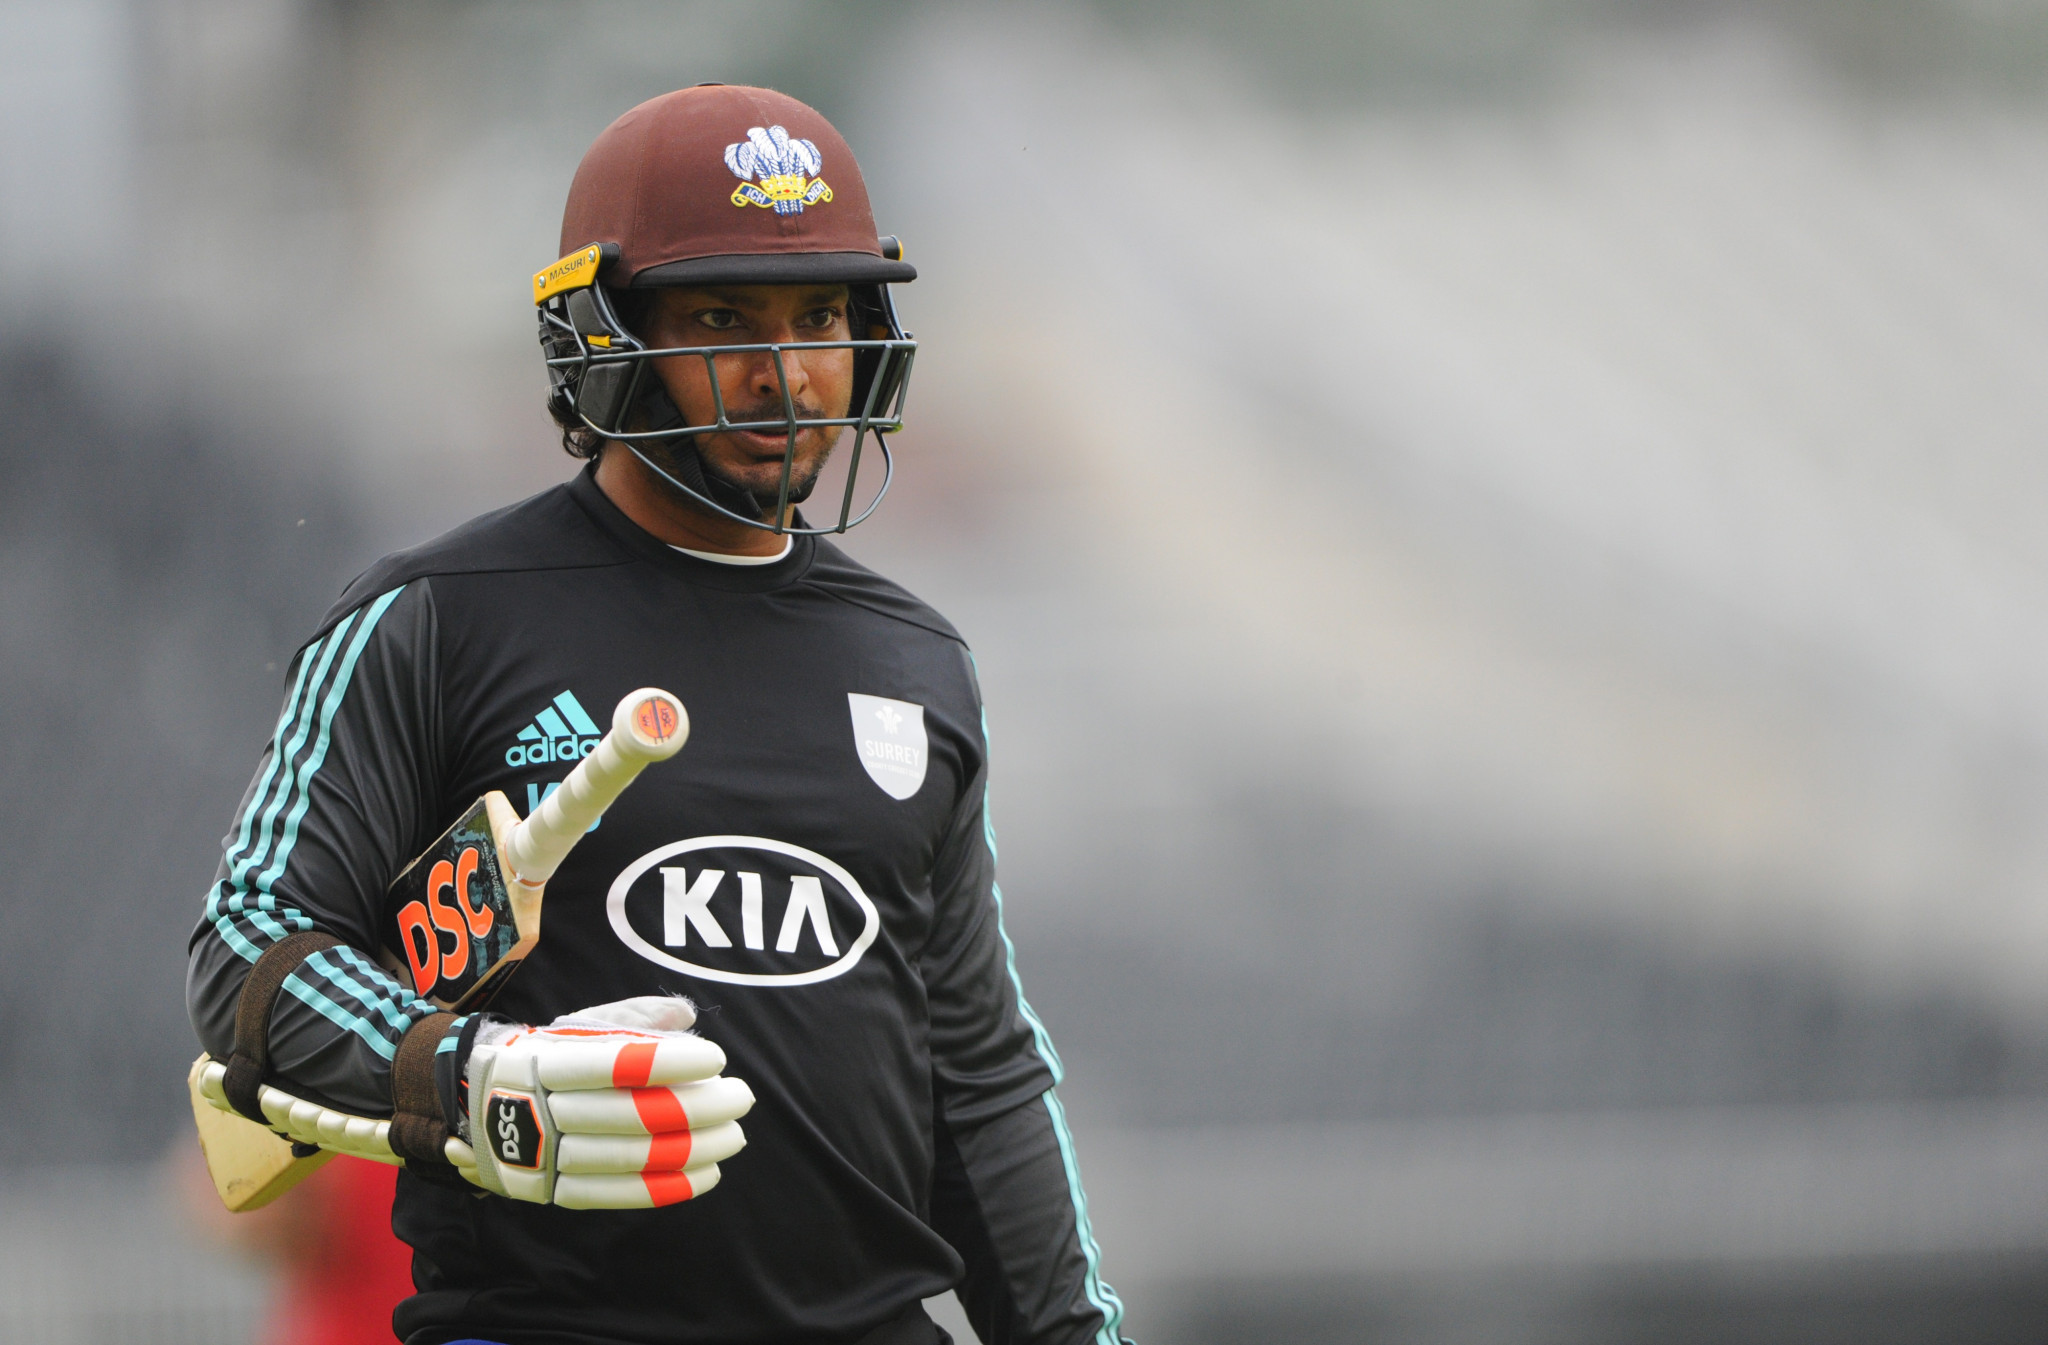 Former Sri Lankan cricketer Kumar Sangakkara has admitted it is doubtful the sport will feature at the 2024 Olympic Games in Paris but claimed Los Angeles 2028 was a very likely target ©Getty Images